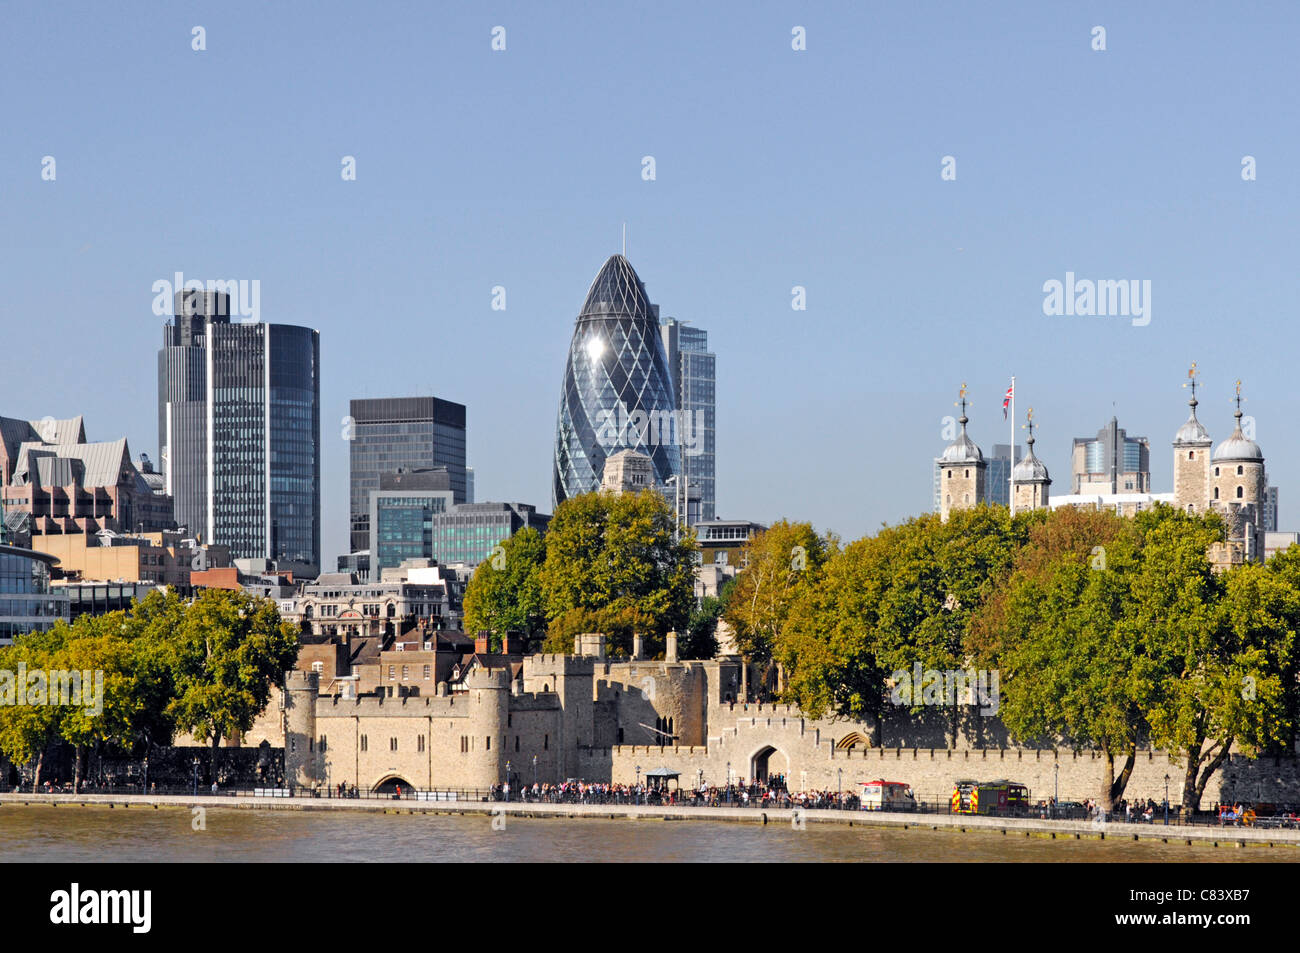 Urban landscape beyond River Thames with City of London skyline & medieval Tower of London contrasting with - Stock Image